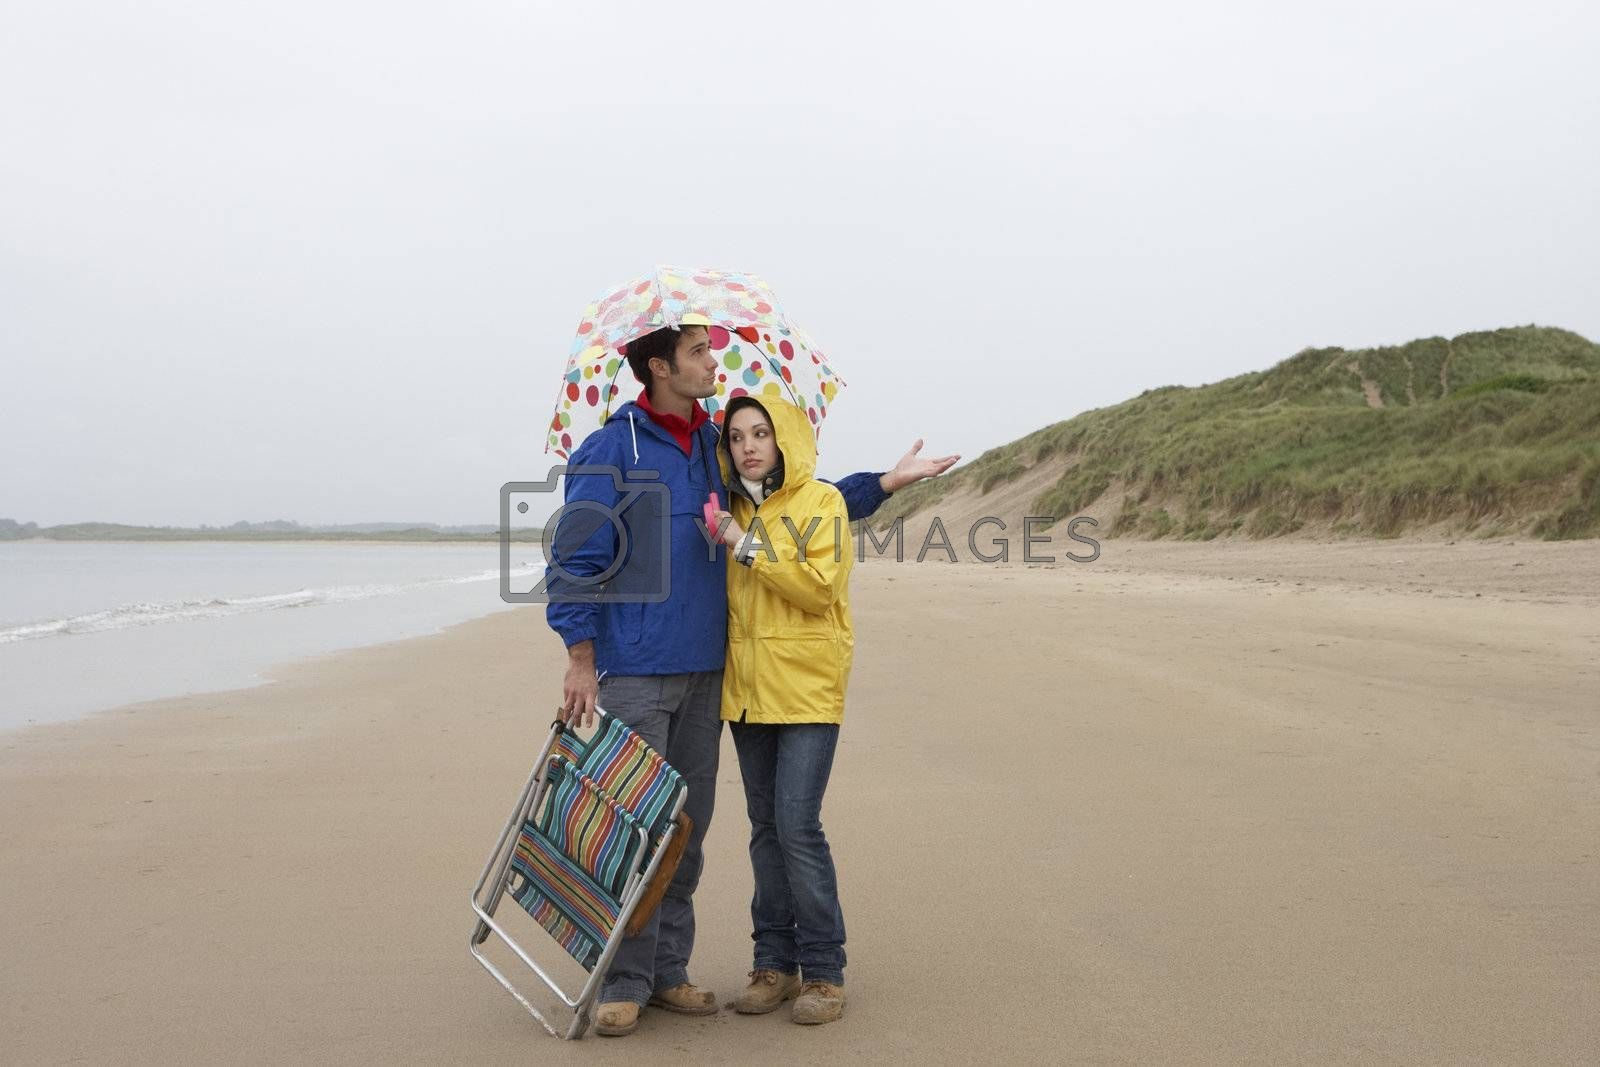 Royalty free image of Young couple on beach with umbrella by omg_images